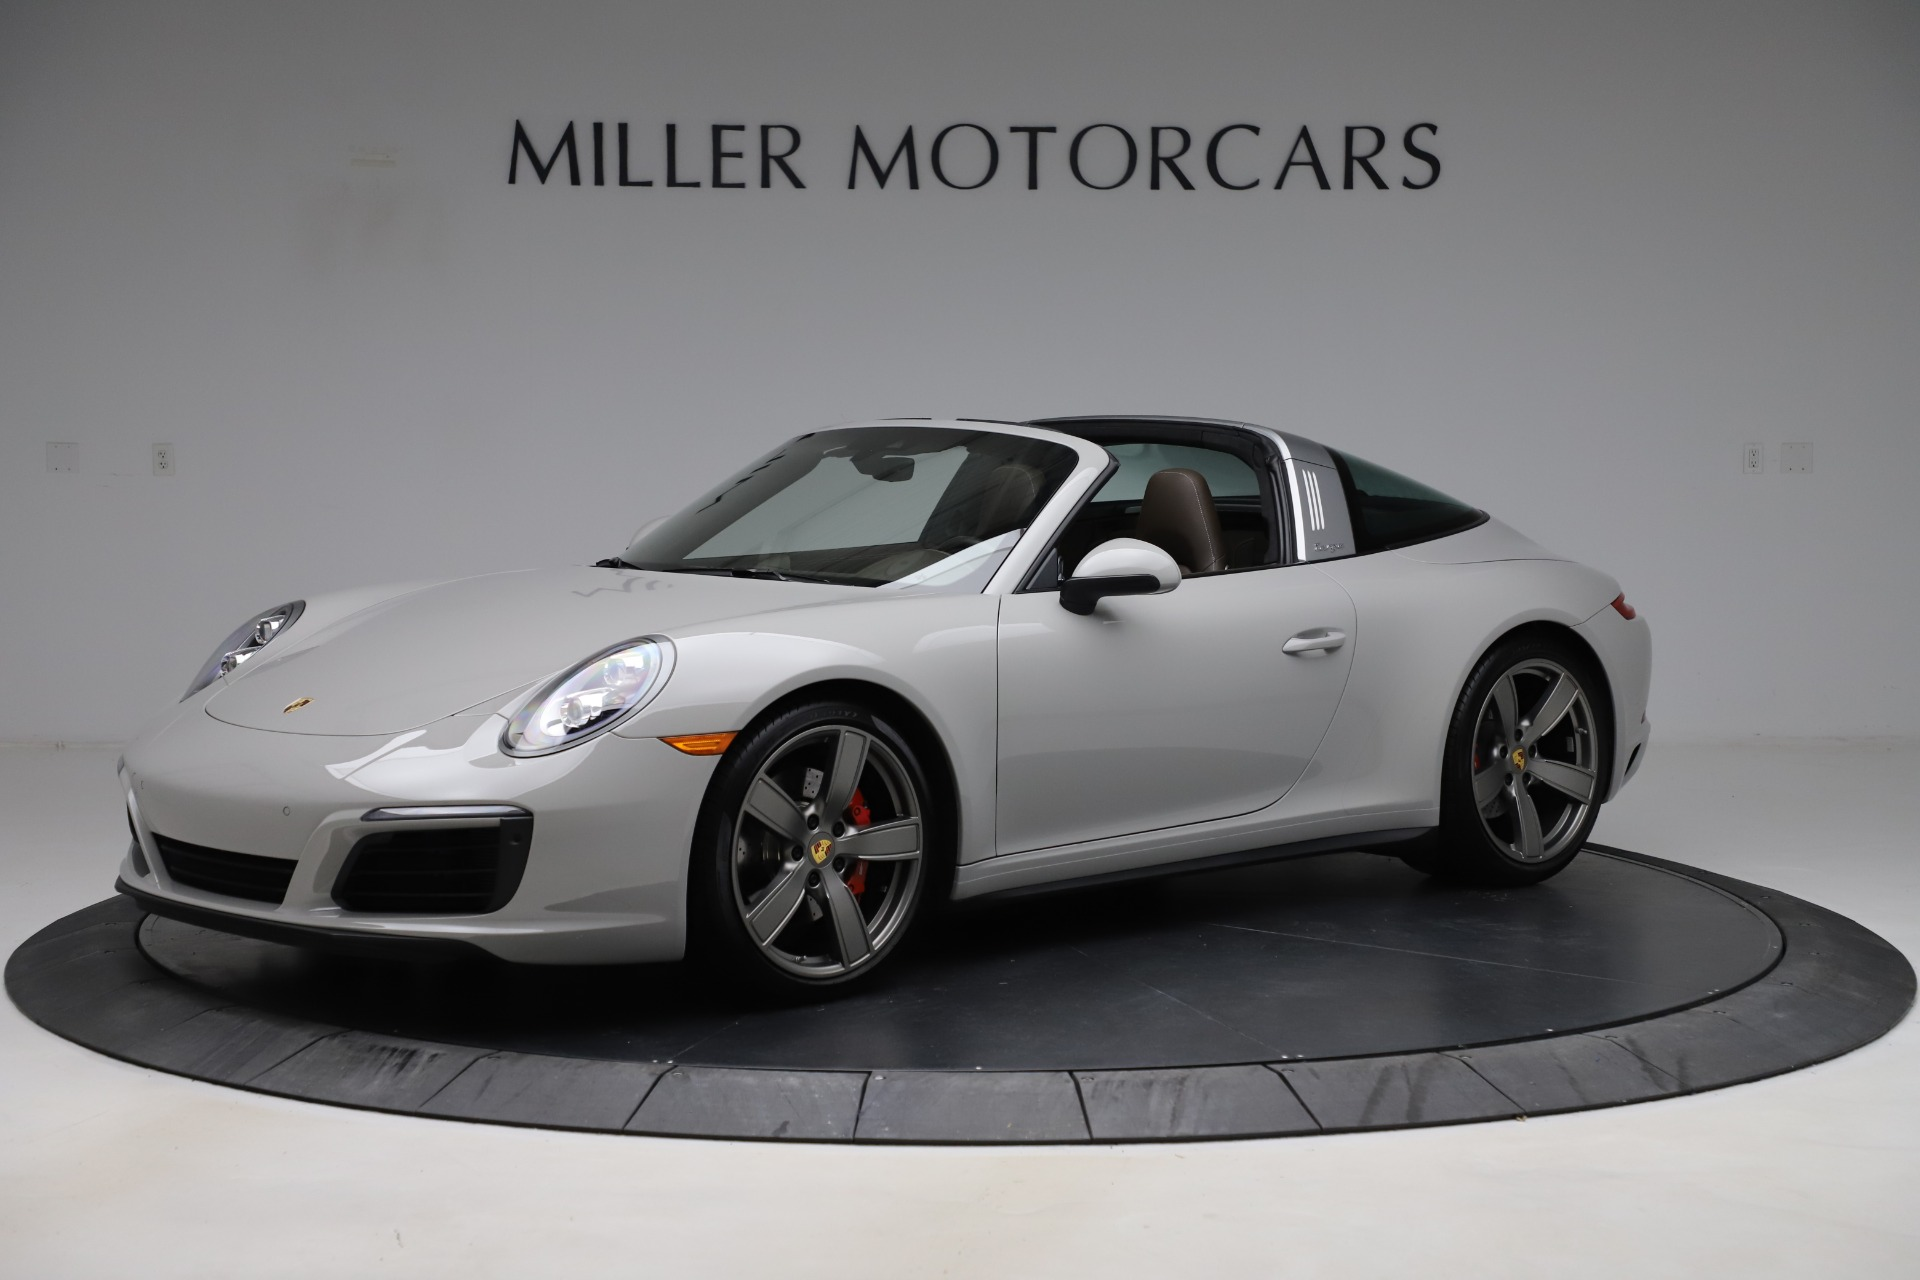 Used 2018 Porsche 911 Targa 4S for sale $134,900 at Rolls-Royce Motor Cars Greenwich in Greenwich CT 06830 1